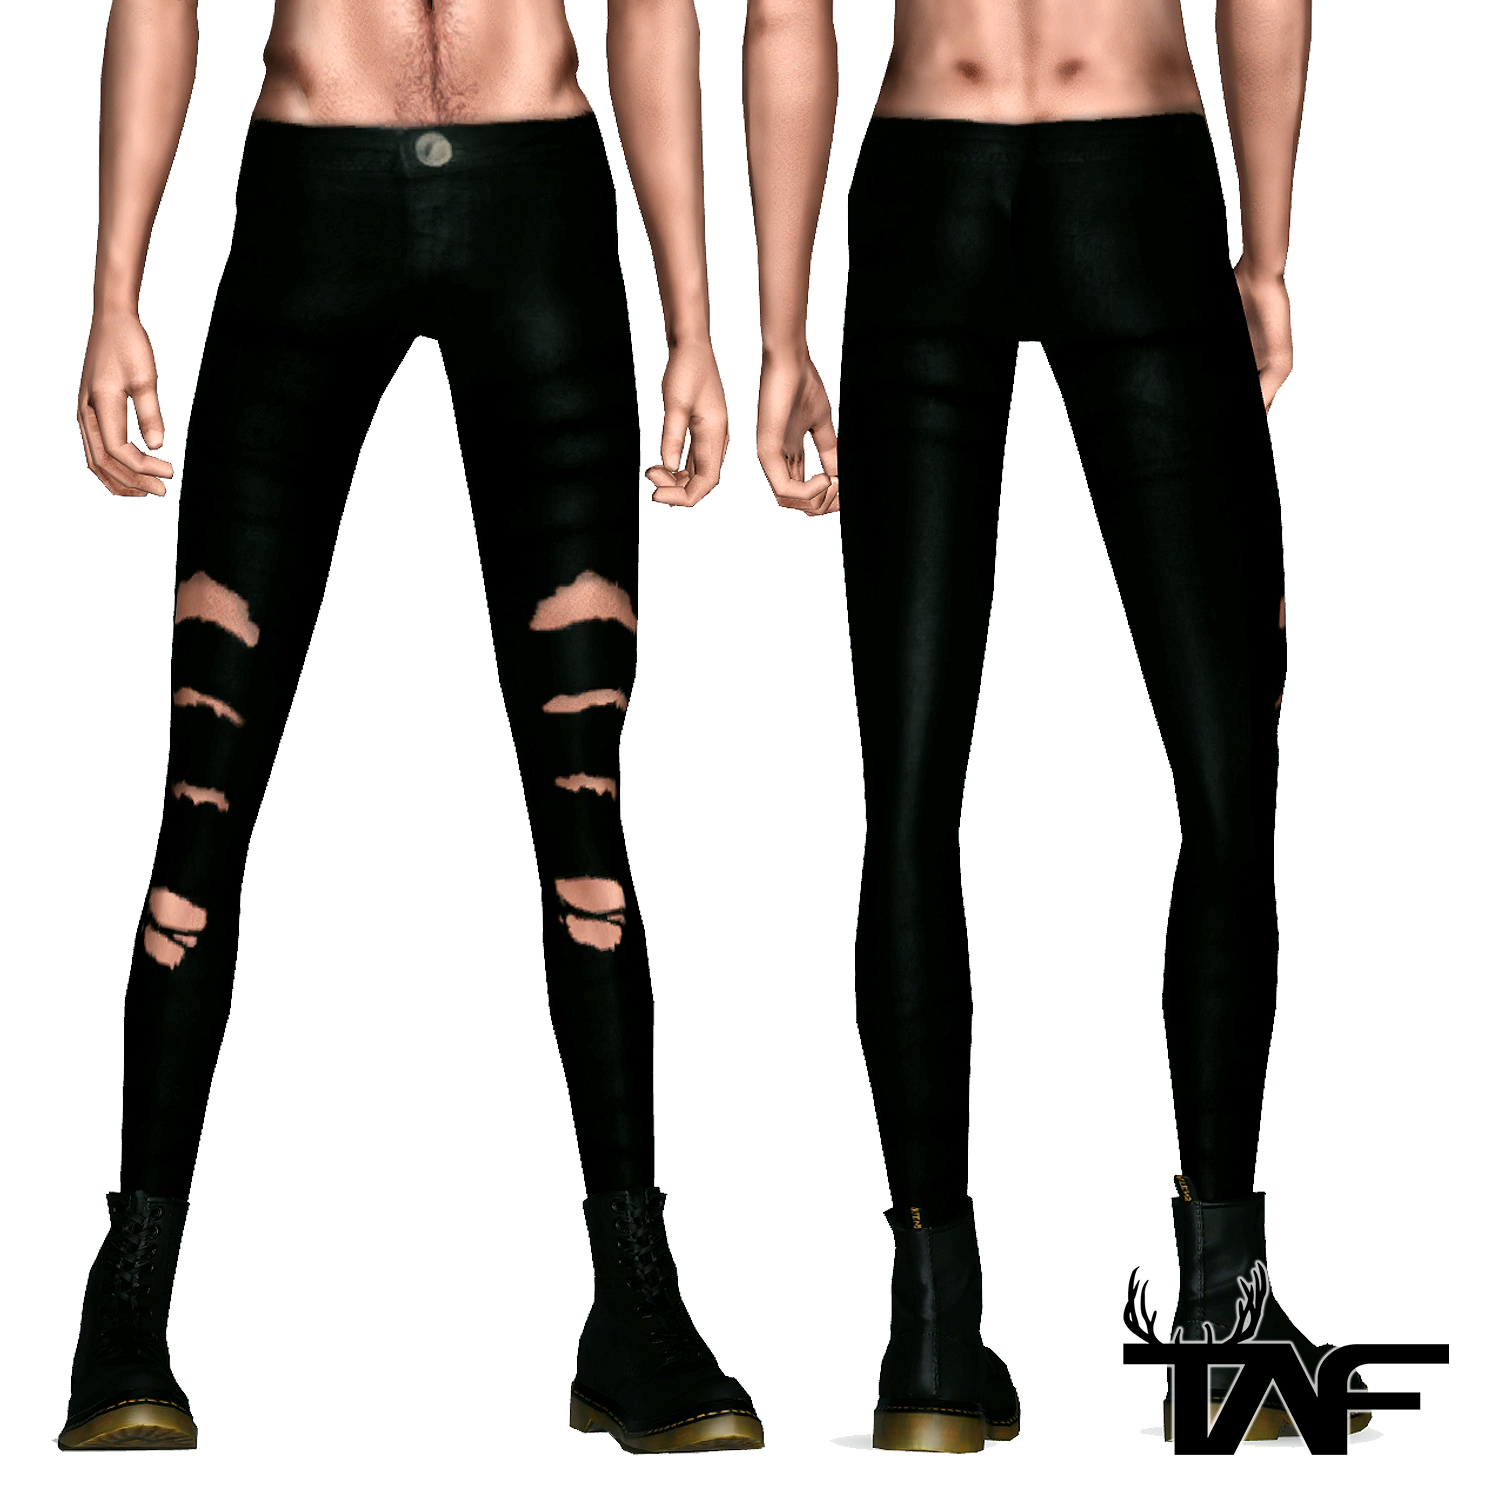 Torn Pants for Male Sims 3 By TAF | TAF Sims 3 Download | Pinterest | Sims and Sims cc